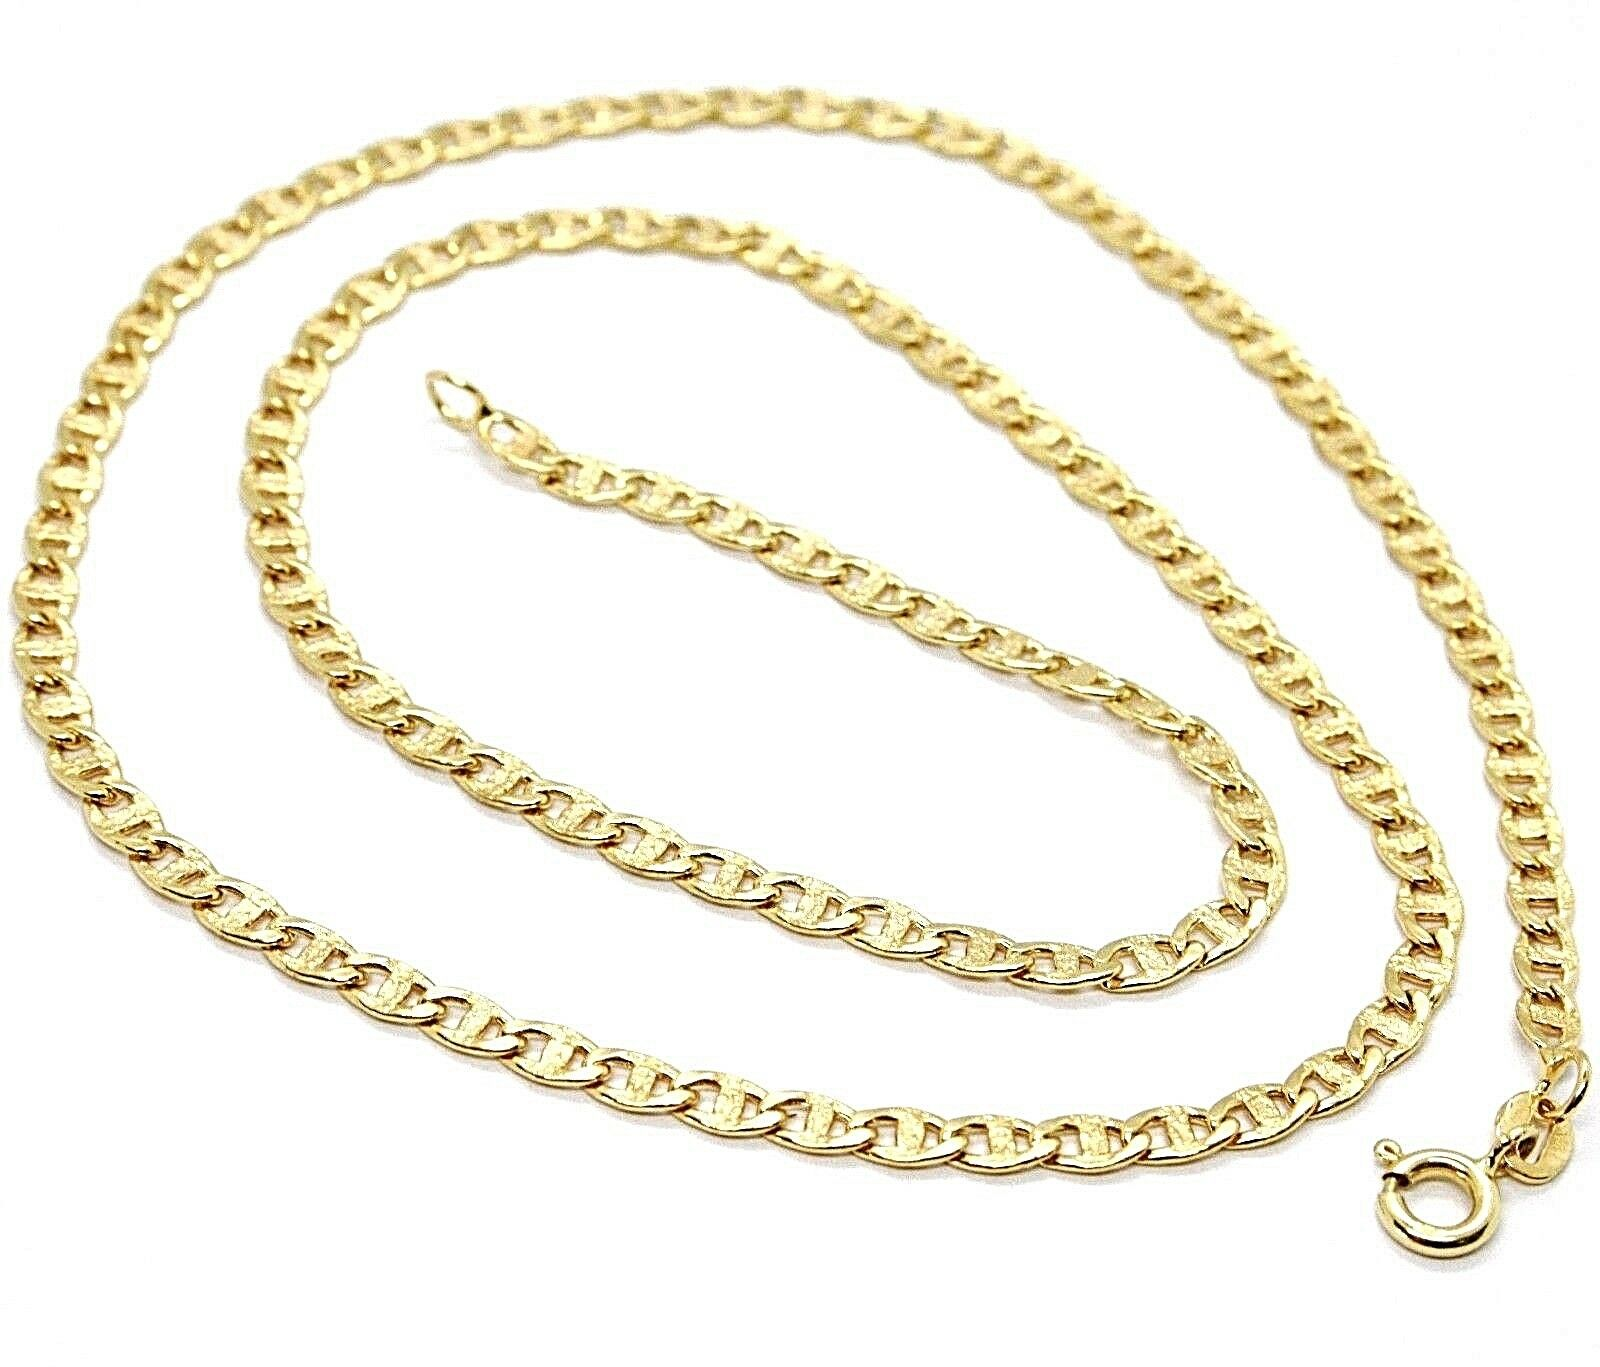 18K YELLOW gold CHAIN FLAT NAVY MARINER WORKED LINK 3.5 MM, 20 INCHES ITALY MADE